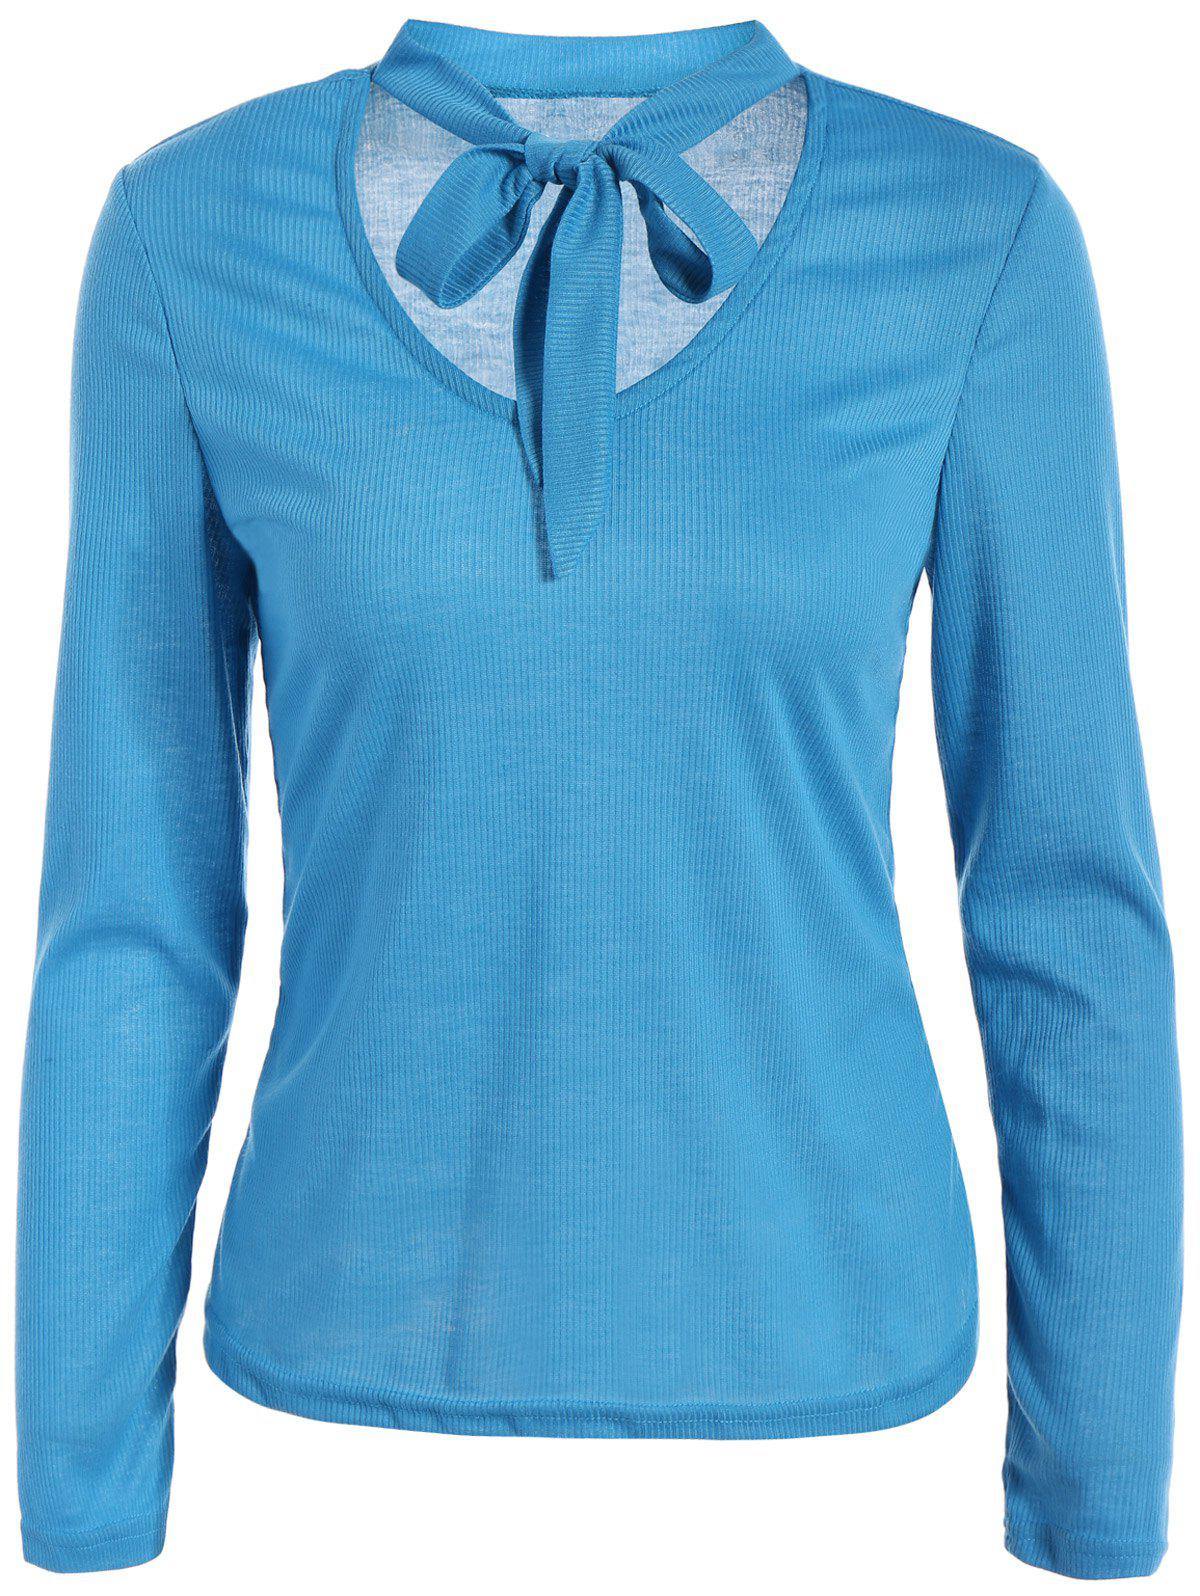 Best V Neck Long Sleeve Tee With Neck Tie